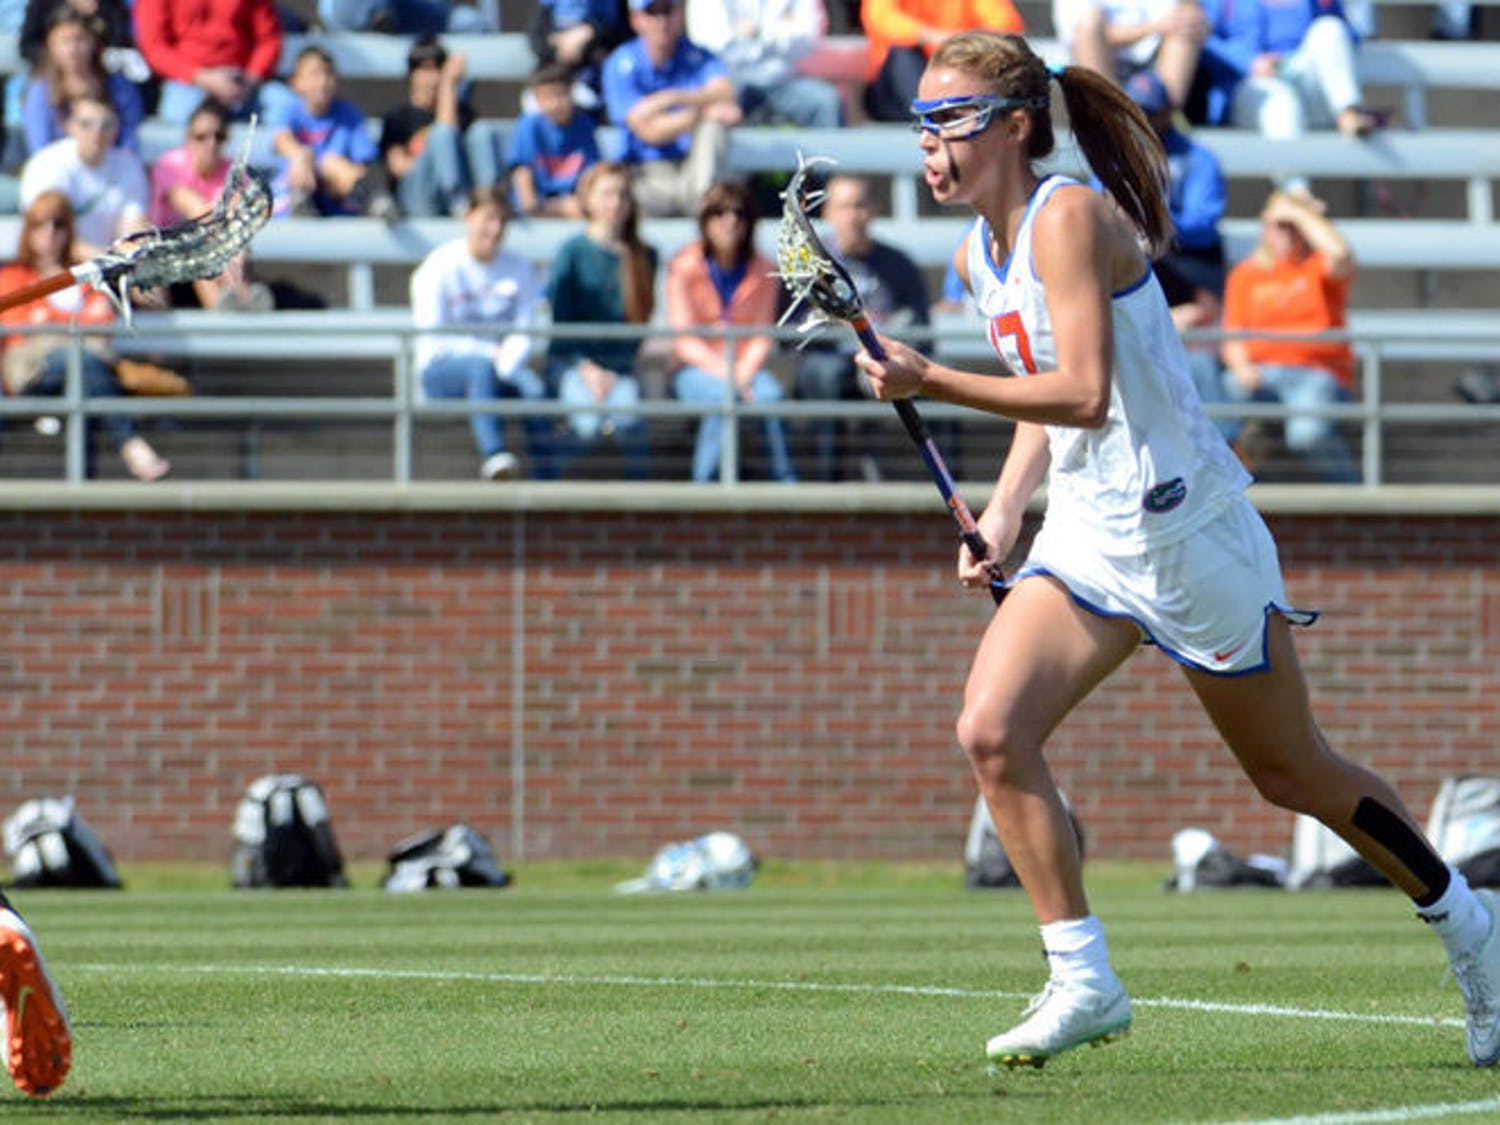 Former Gators Molly Stevens was one of the players picked in the WPLL drafton Wednesday.